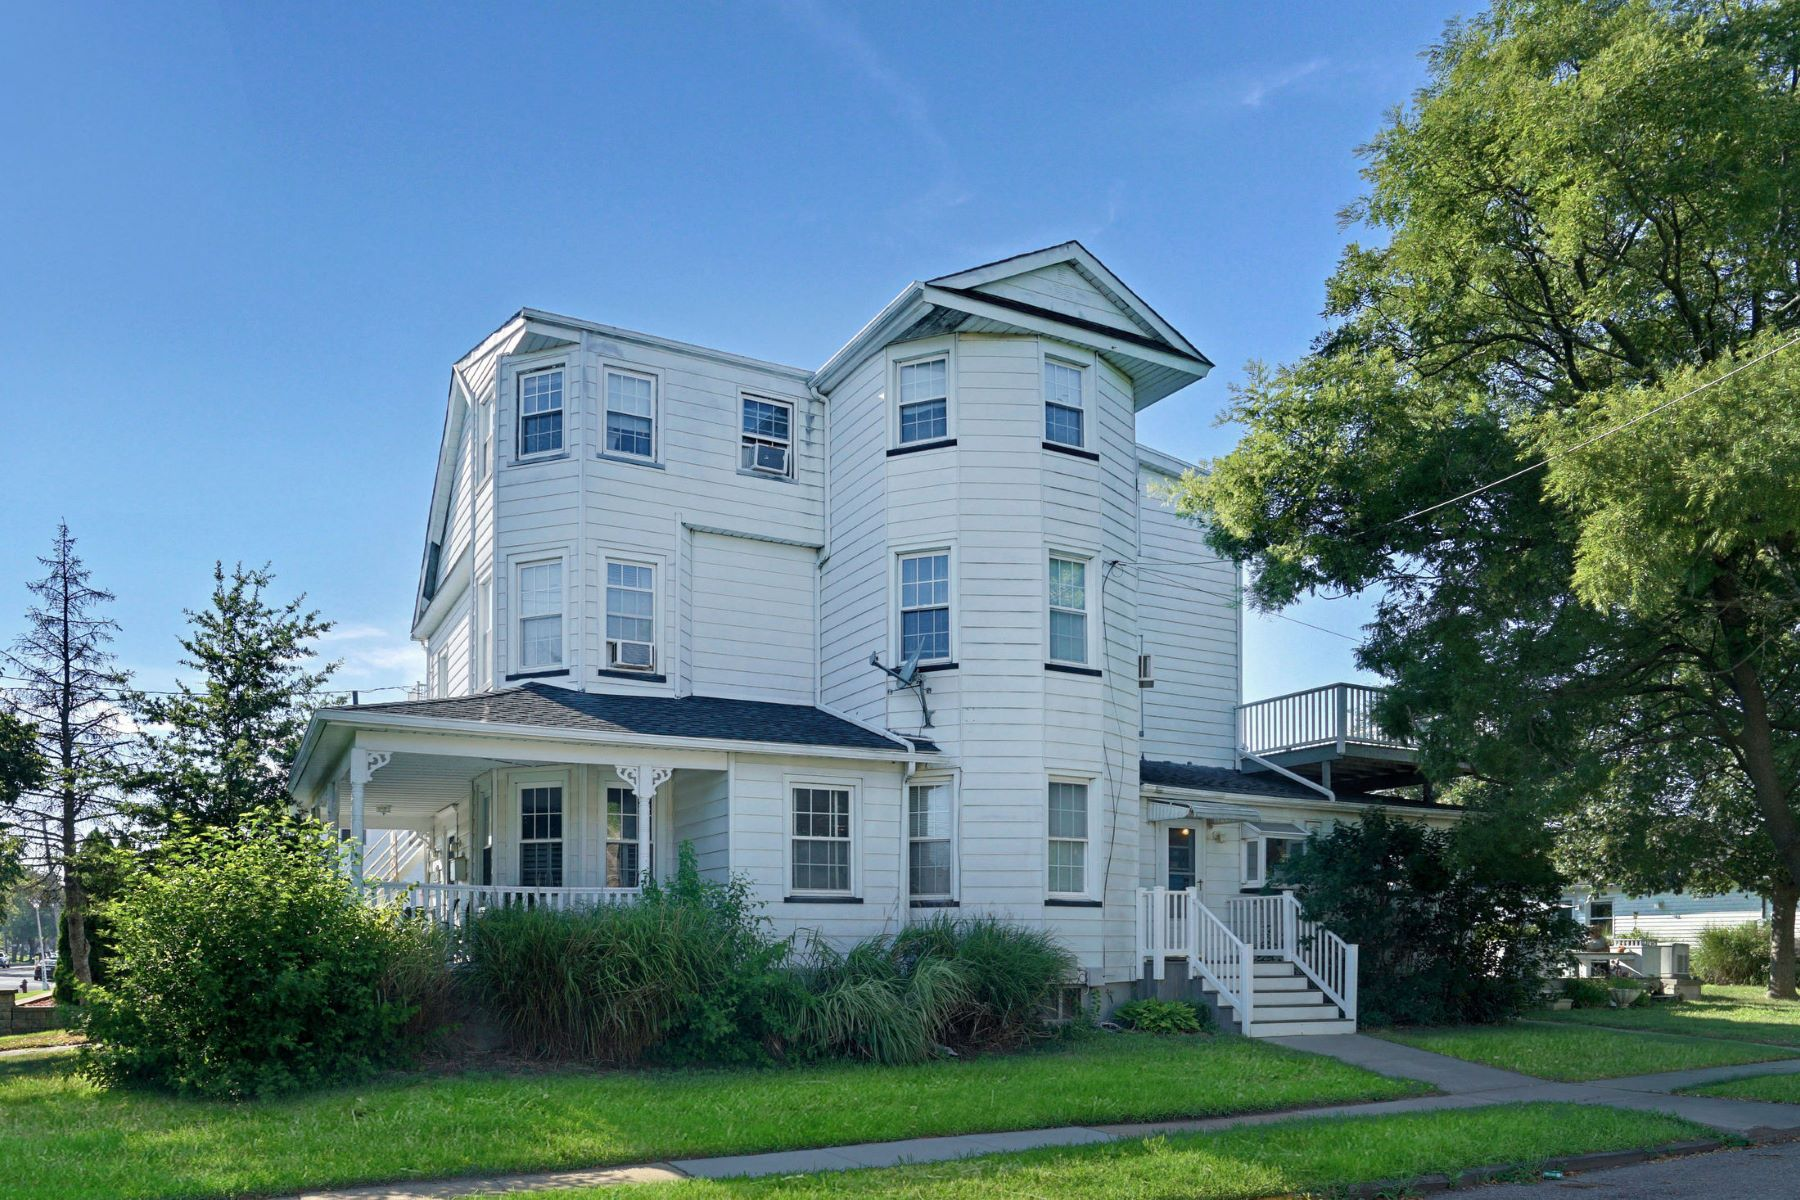 Single Family Homes for Active at Spacious Victorian 300 8th Avenue Belmar, New Jersey 07719 United States